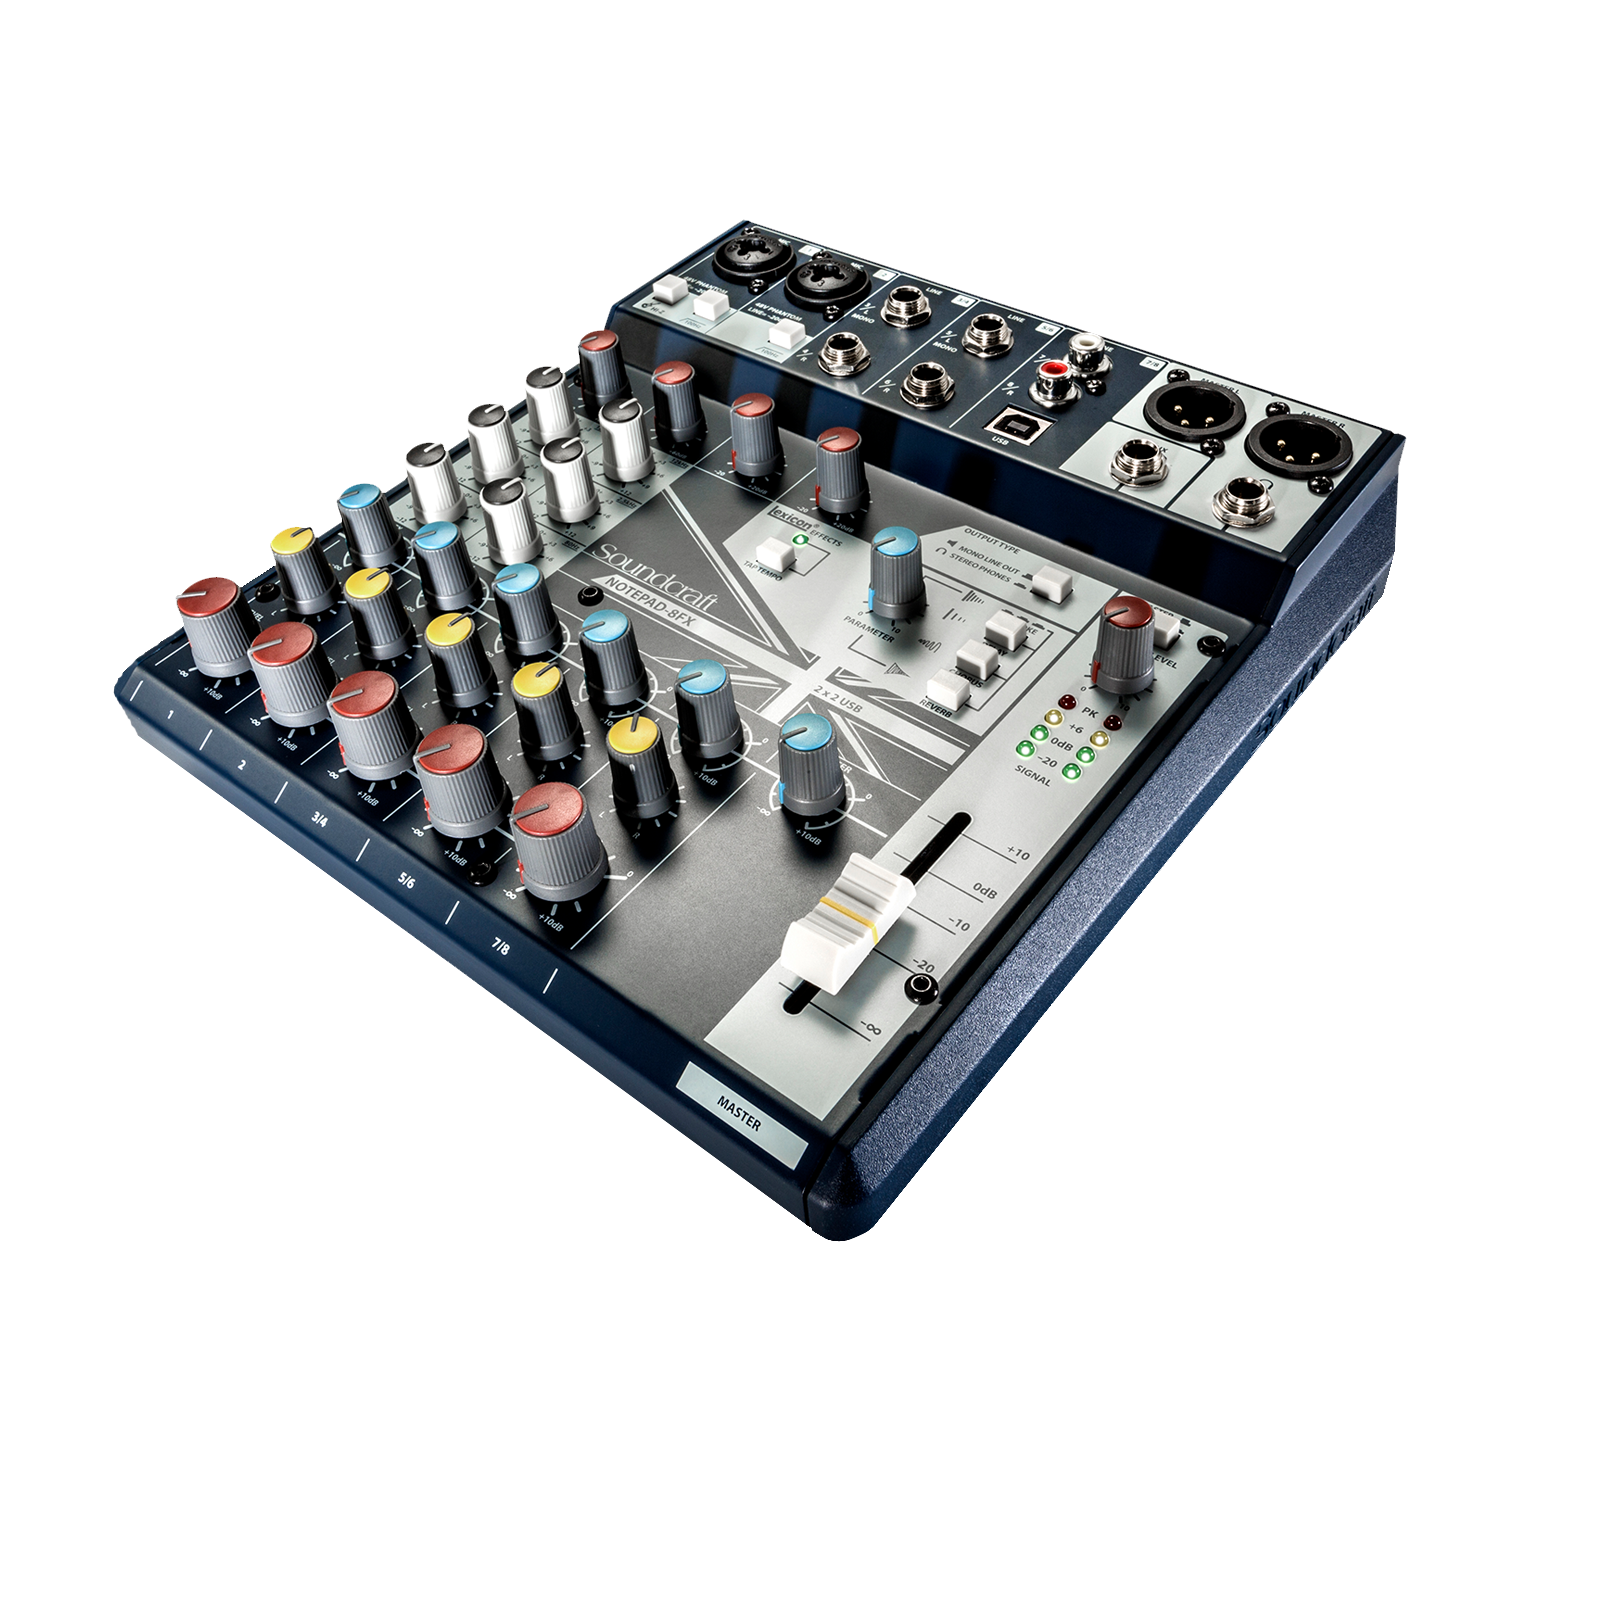 Notepad-8FX (B-Stock) - Dark Blue - Small-format analog mixing console with USB I/O and Lexicon effects - Detailshot 2